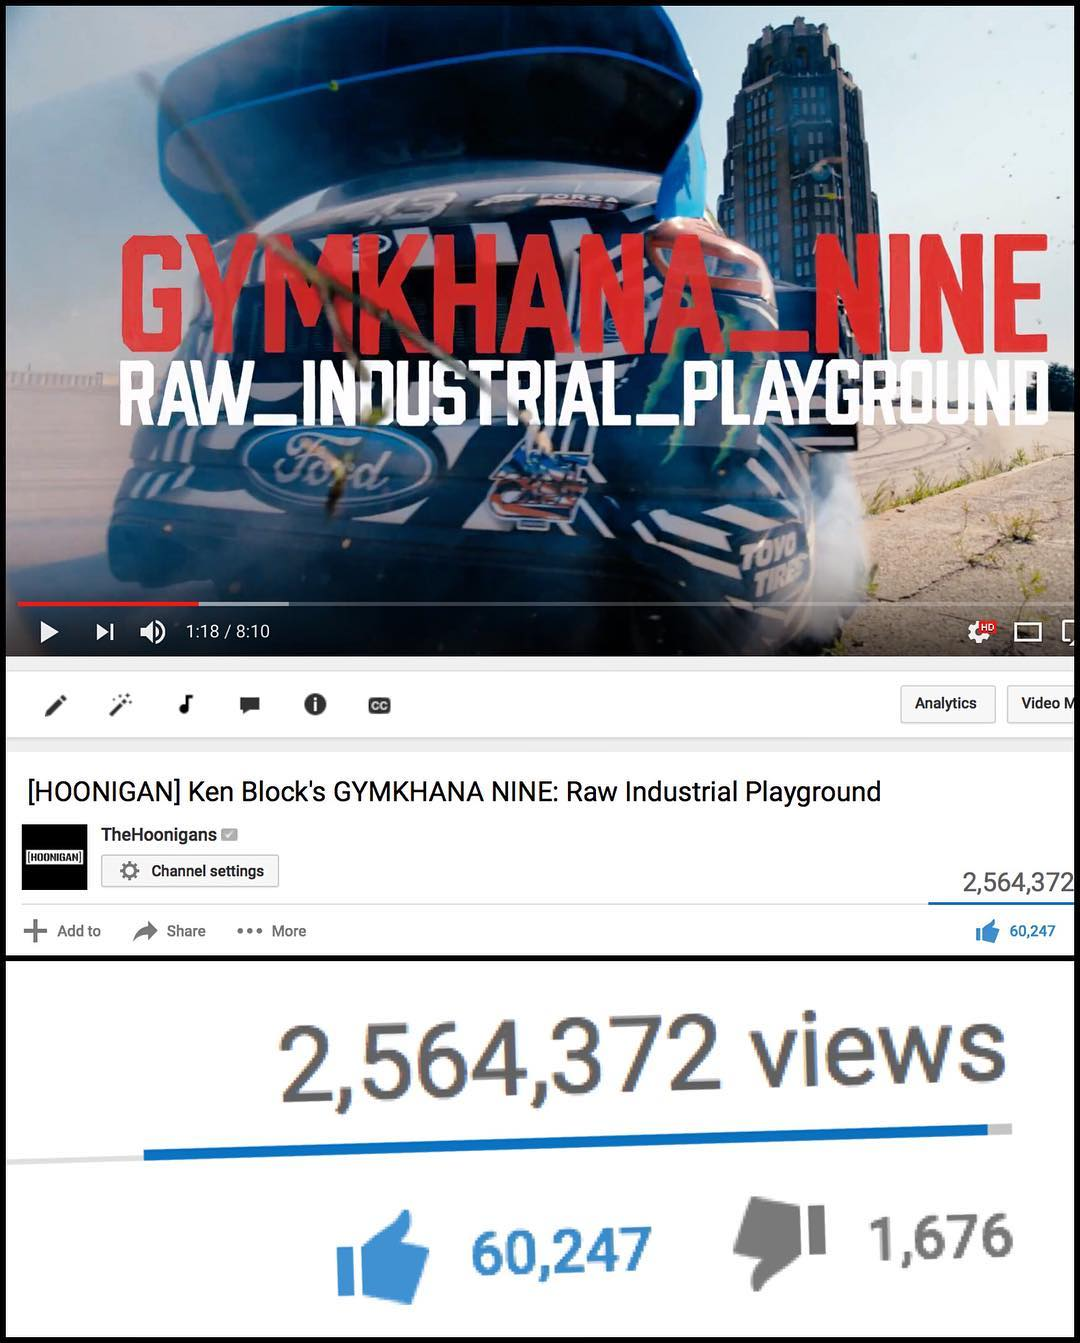 2.5 MILLION views in 24 hours for #GymkhanaNINE! A big thank-you to everyone for watching and sharing the video - YOU fans make these videos possible. If you haven't seen it (or just want to watch it again), hit the link in my profile! #bestfans